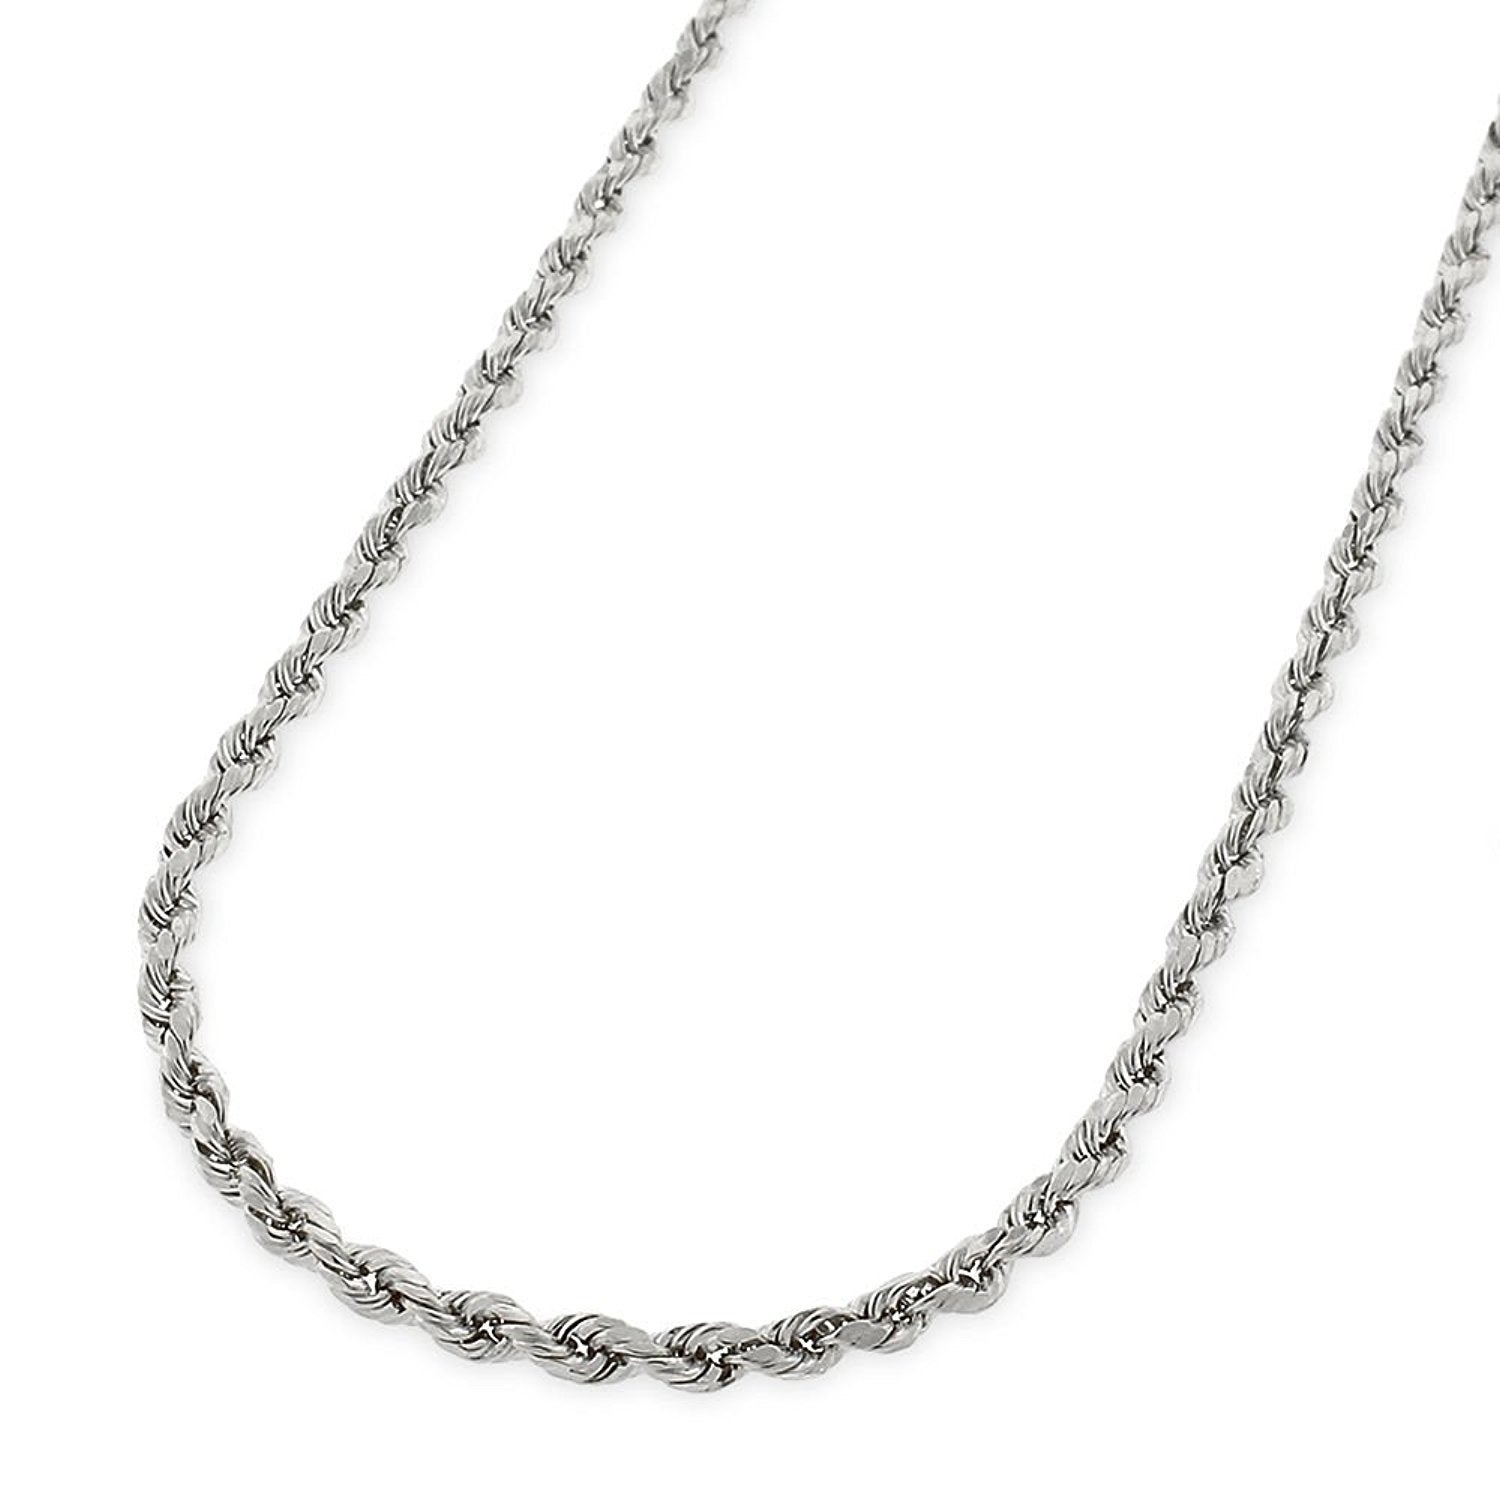 14K 2mm White Gold Star Chain Necklace